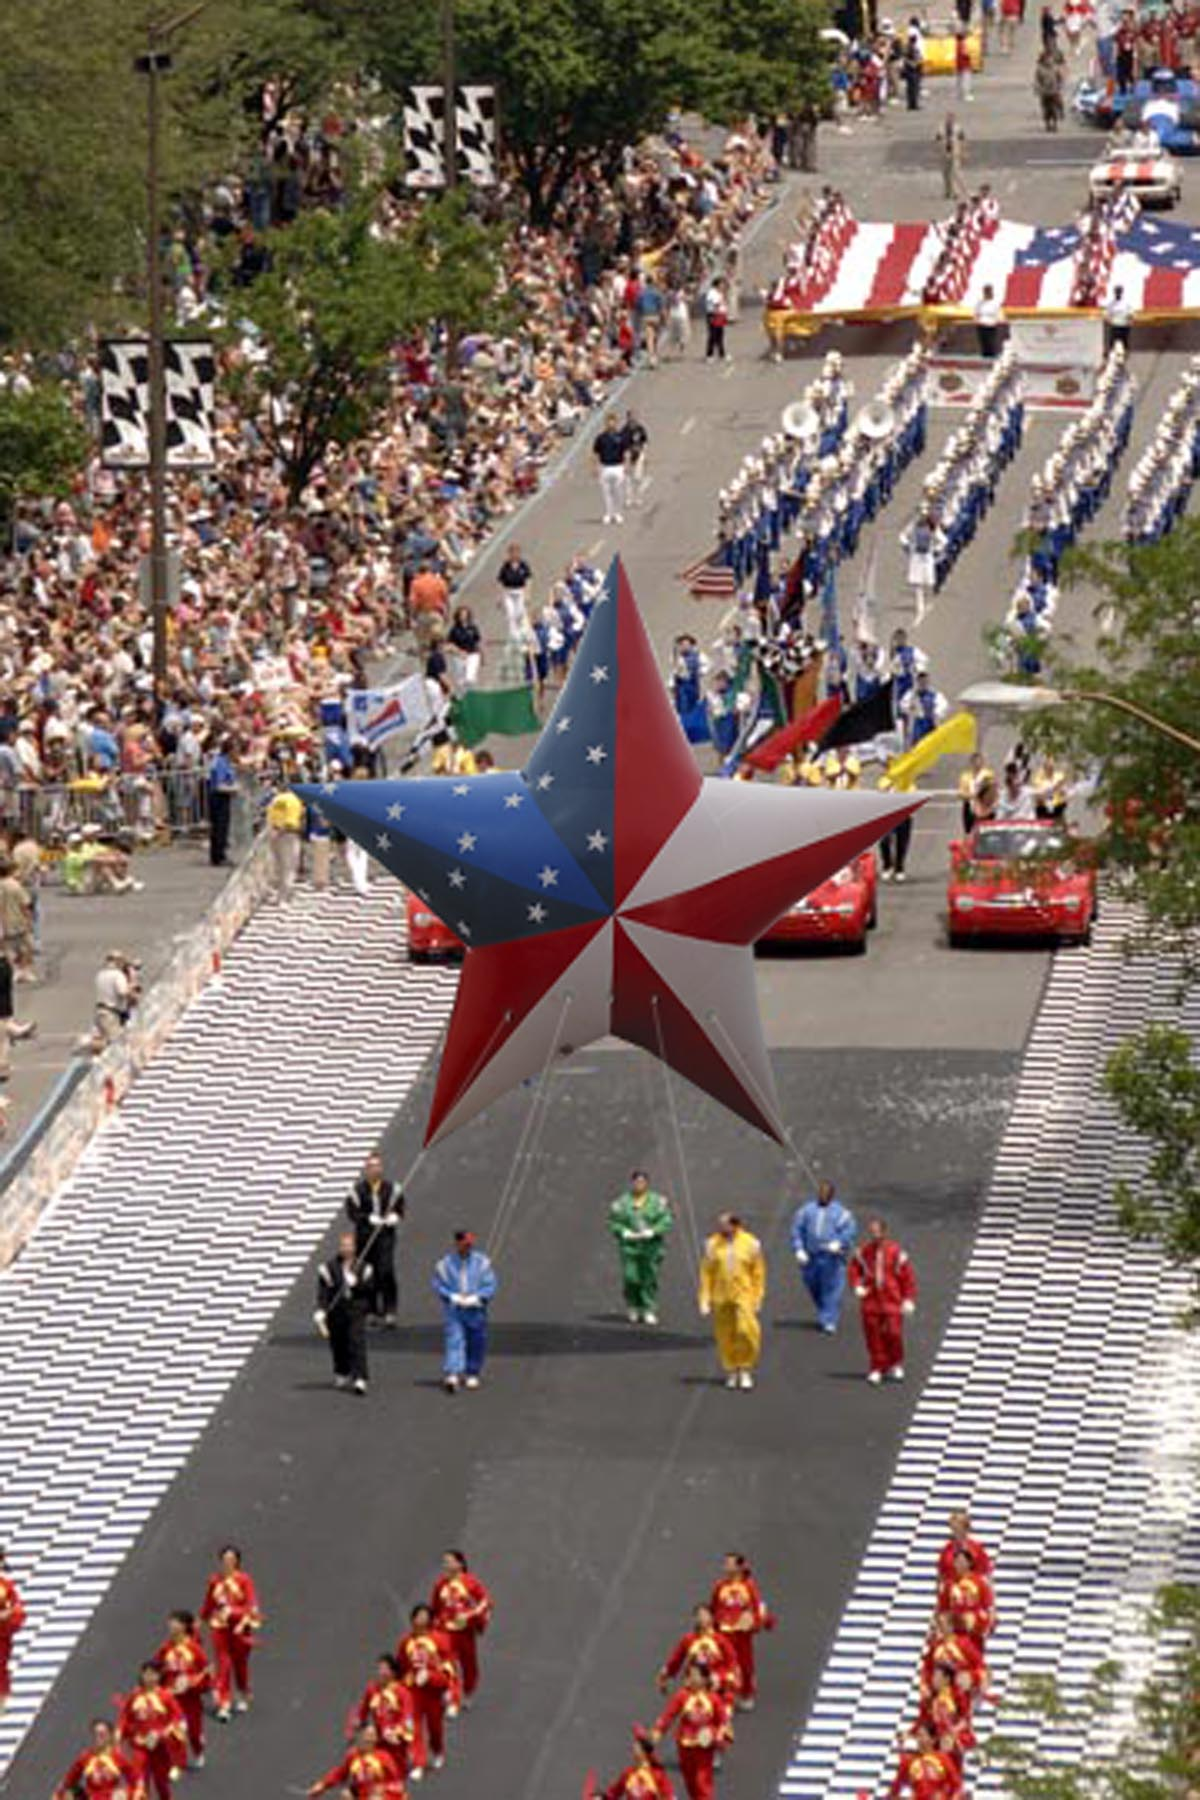 American Star Parade Balloon Fabulous Inflatables